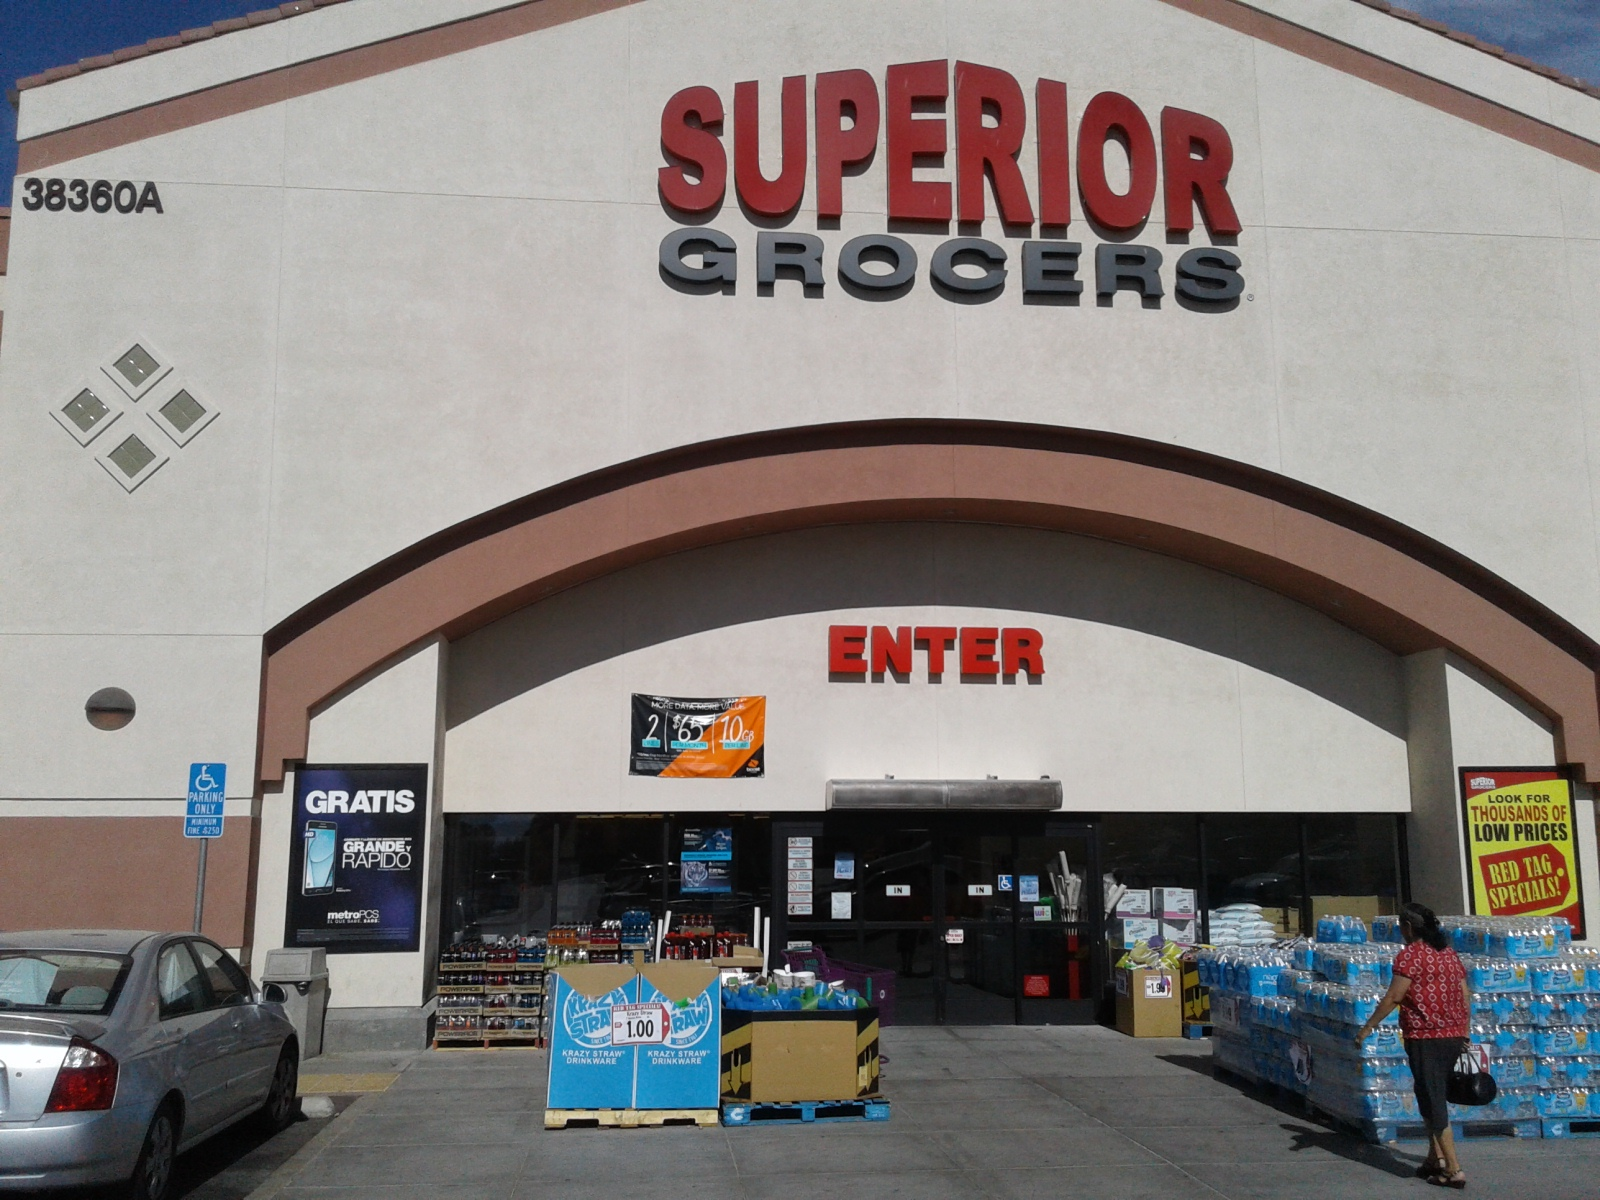 """POP PANELS are displayed front and center by supermarket entrances. These large 48"""" x 69"""" framed advertisements are in full view of vehicular & store customer traffic."""